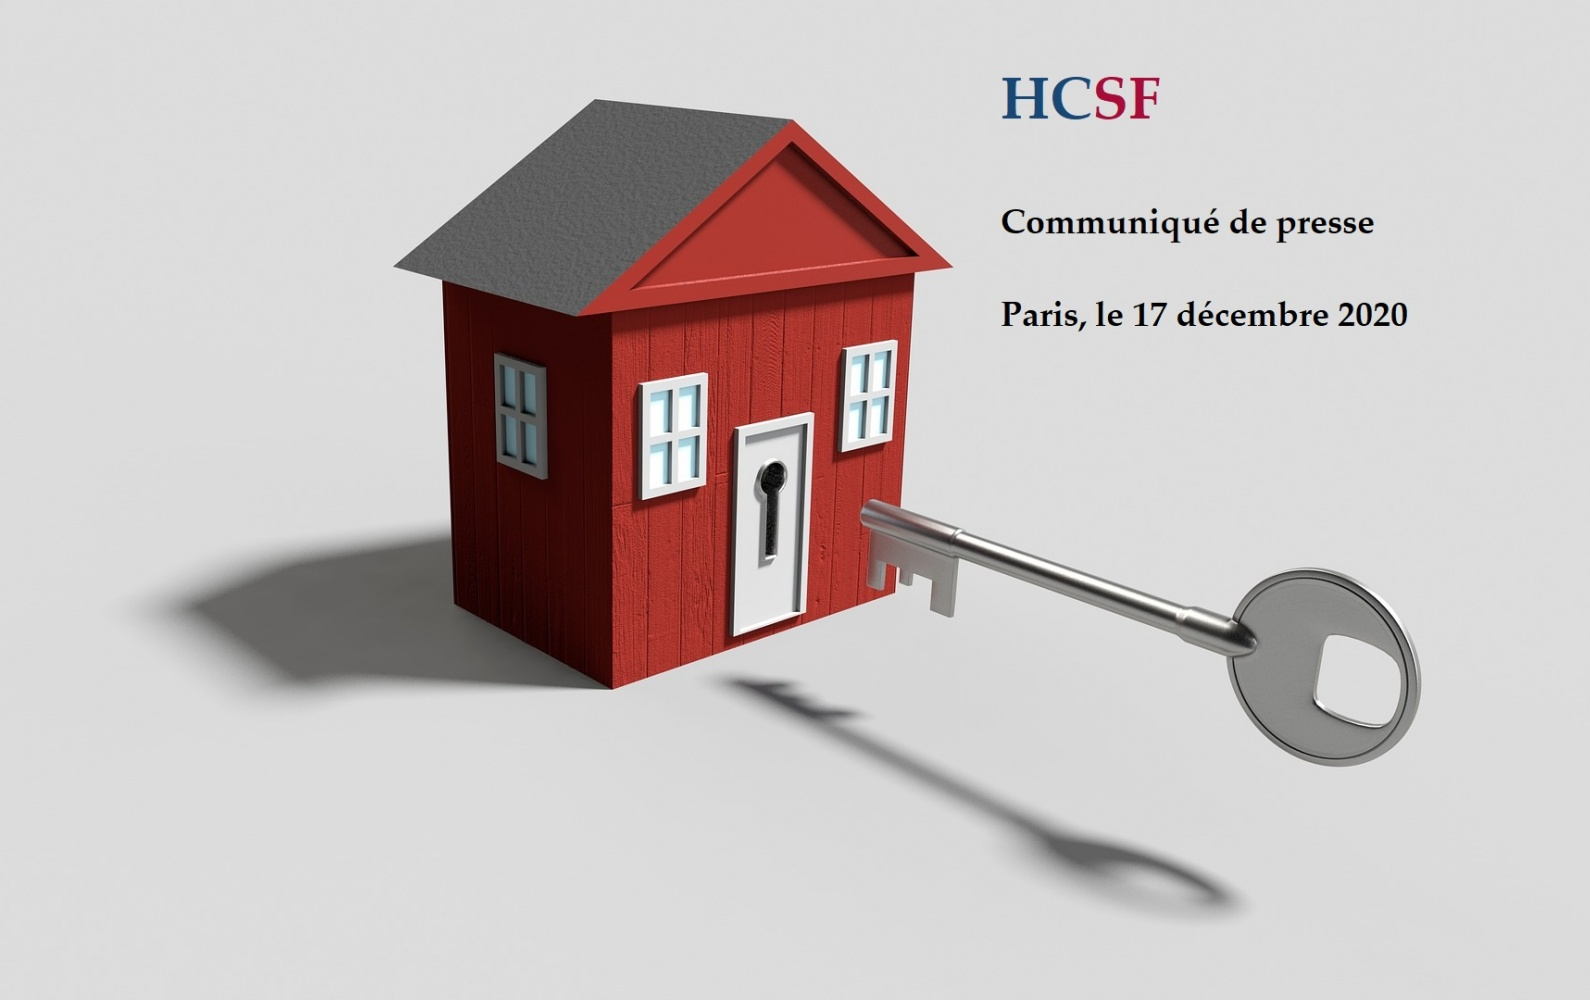 Modification des conditions d'acceptation de crédit immobilier